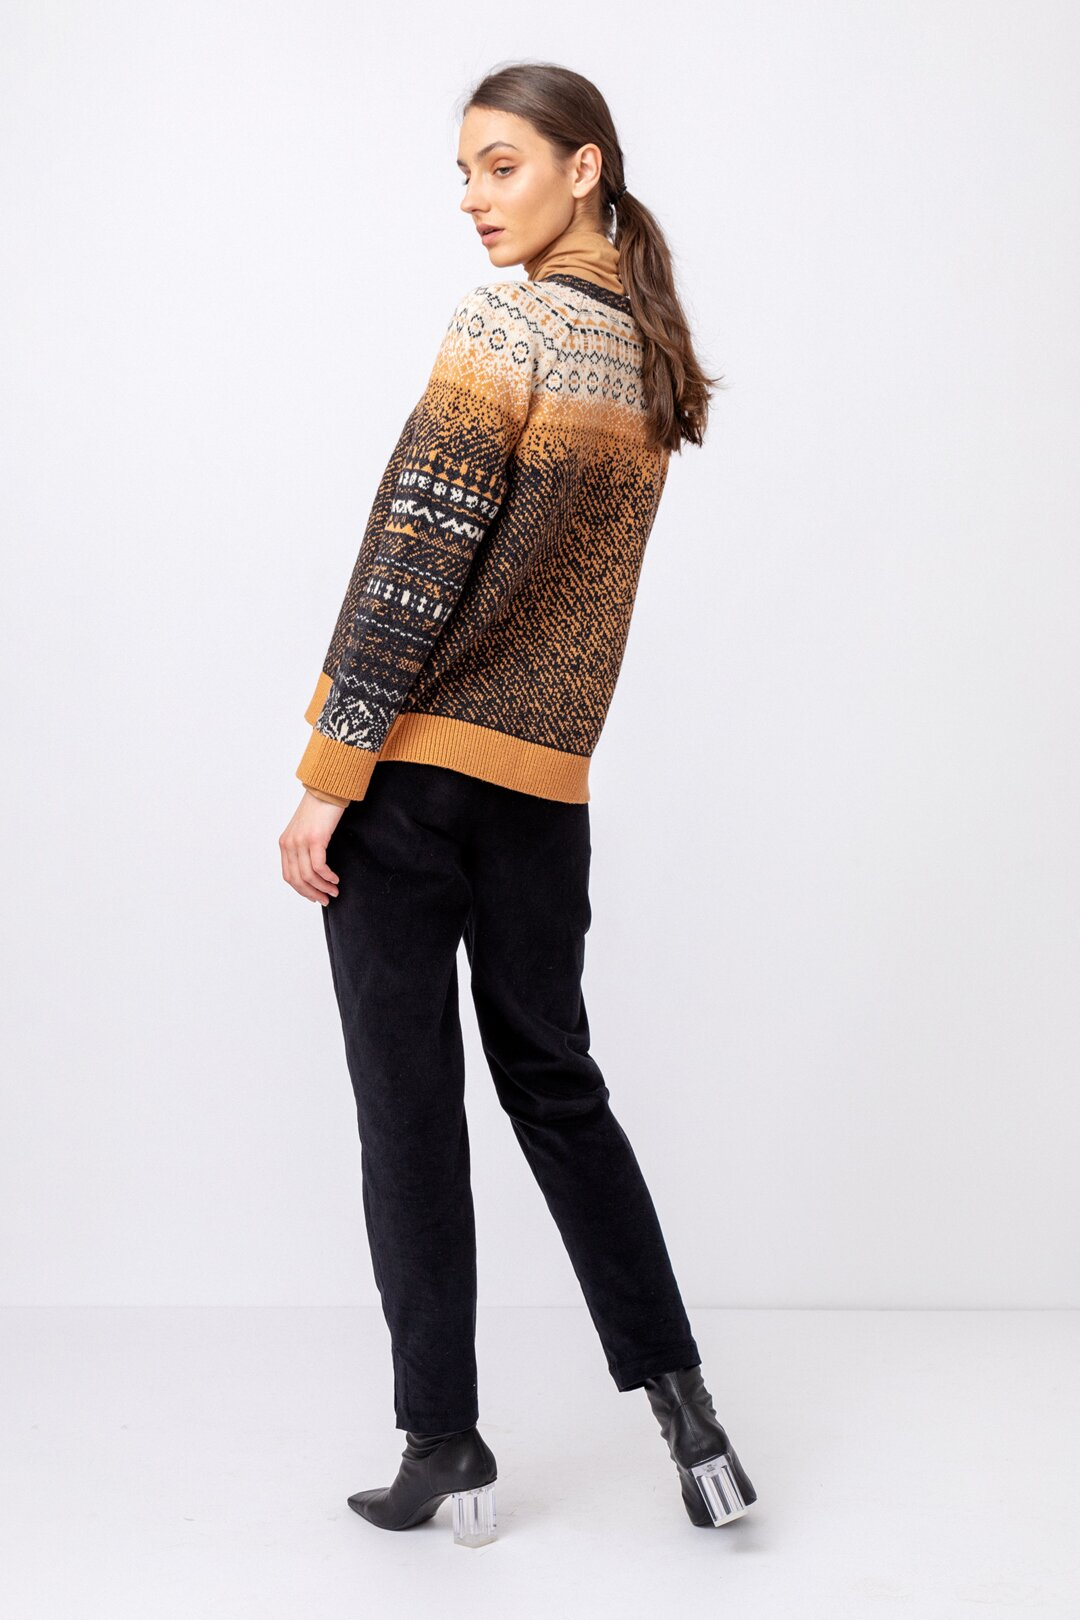 outfit-7c8a8919